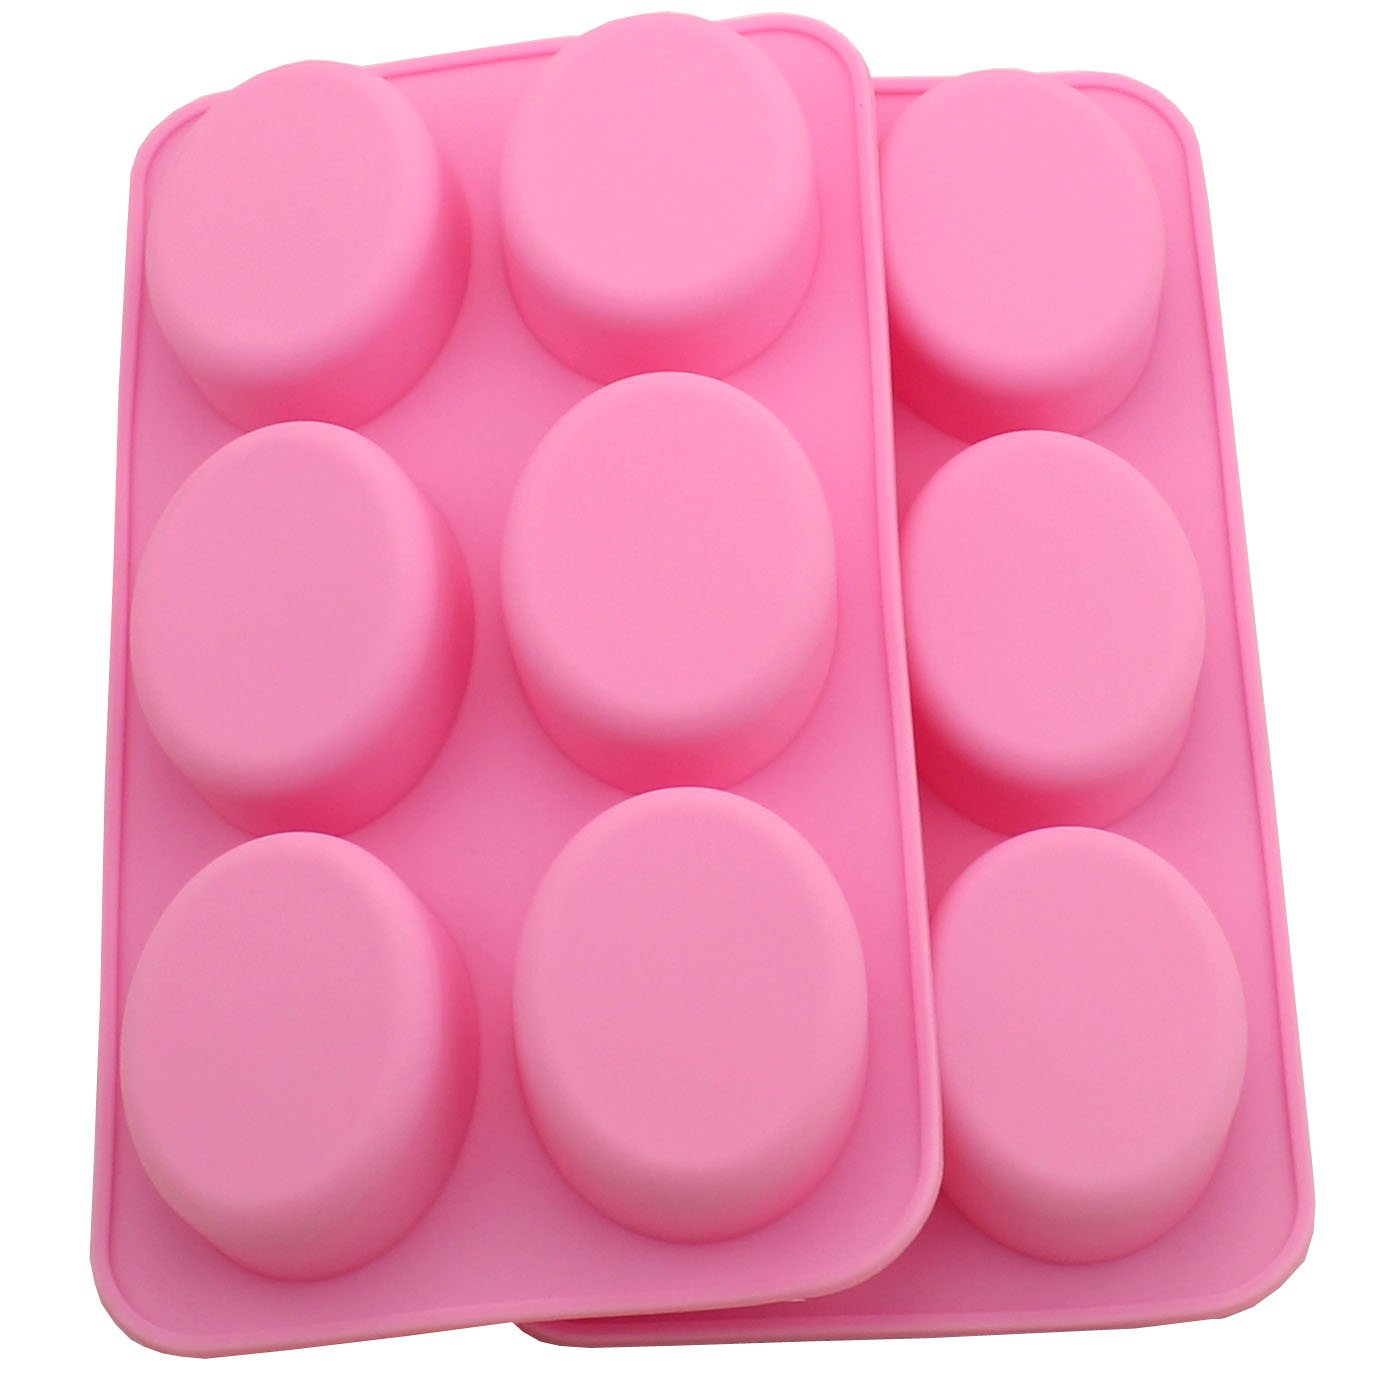 Zicome Oval Silicone Mold for Soap Bar Making, Set of 2 SYNCHKG115178